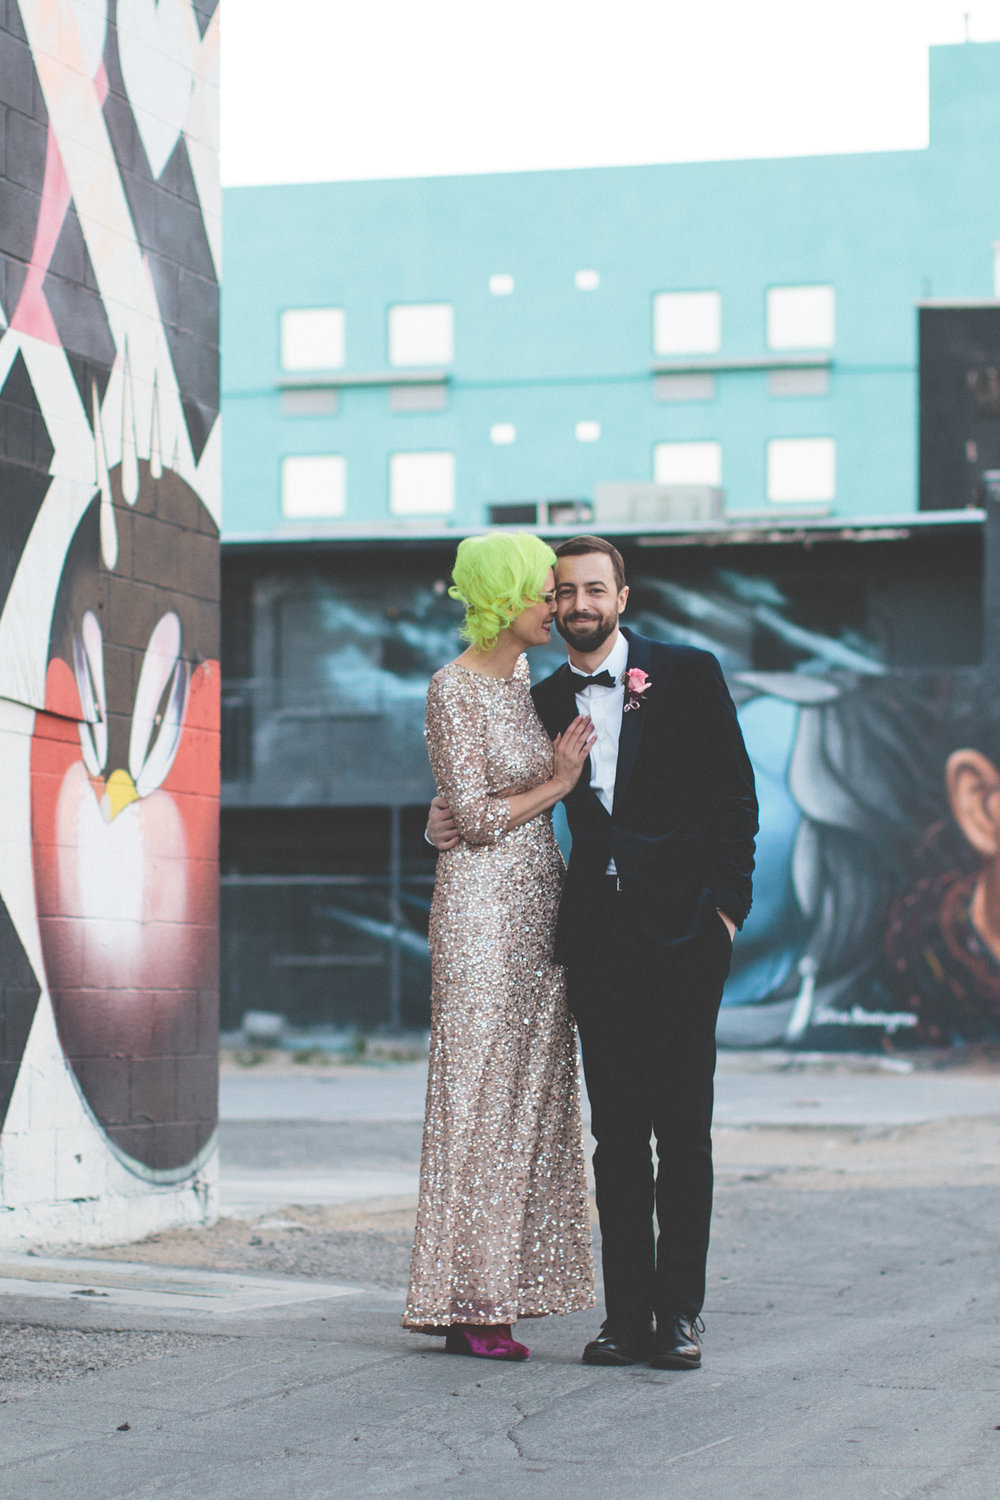 katie-and-erics-bright-downtown-las-vegas-elopement31.jpg